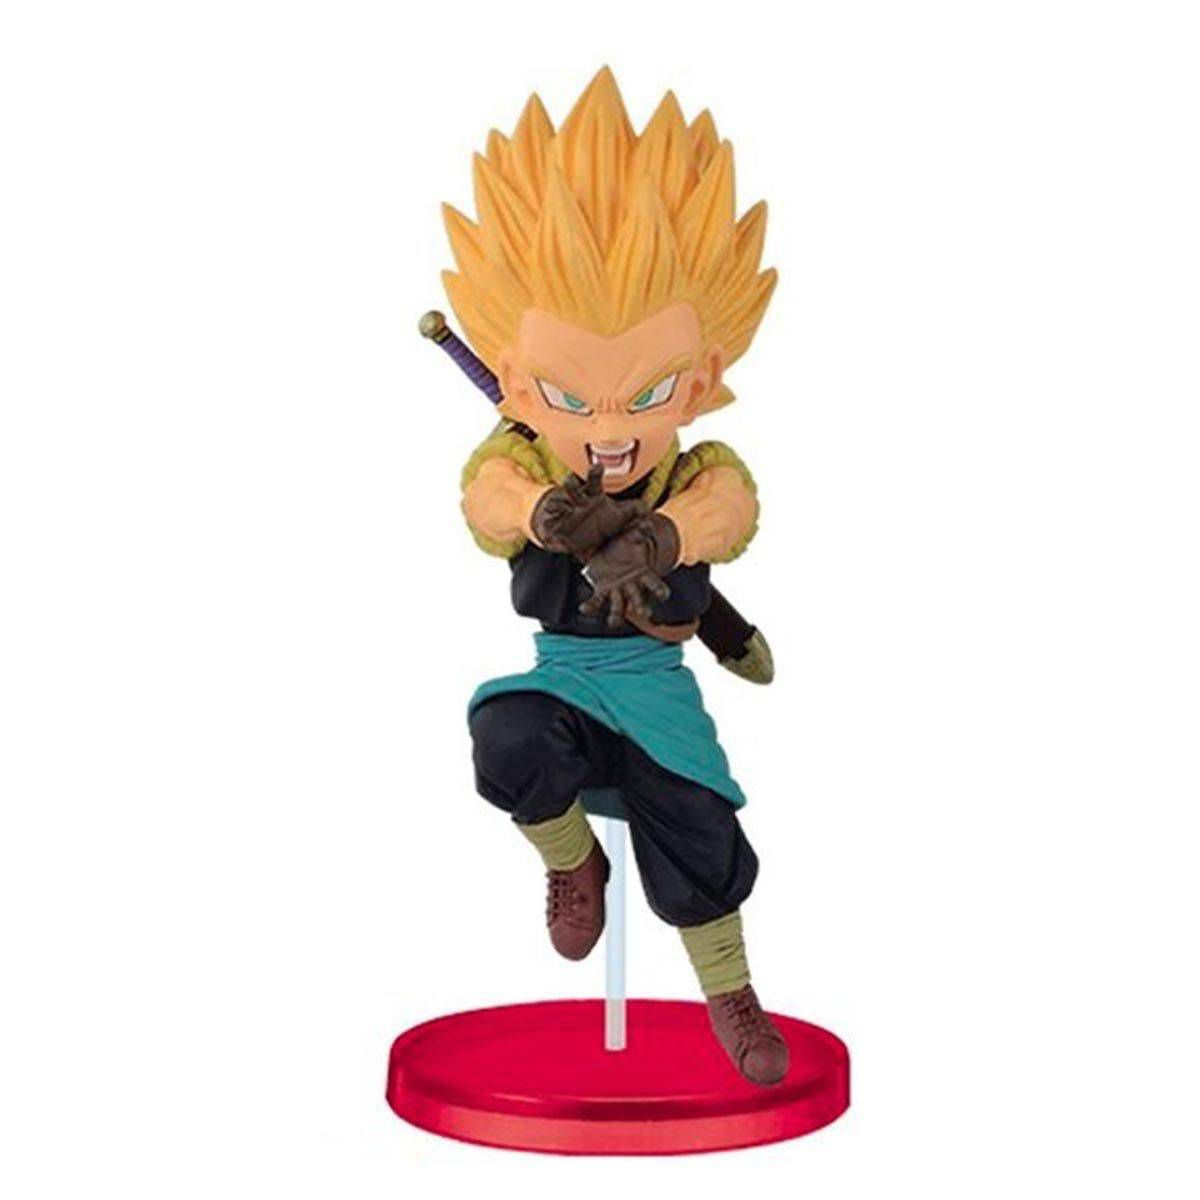 GOTENKS - Super Dragon Ball Heroes WCF - Bandai Banpresto